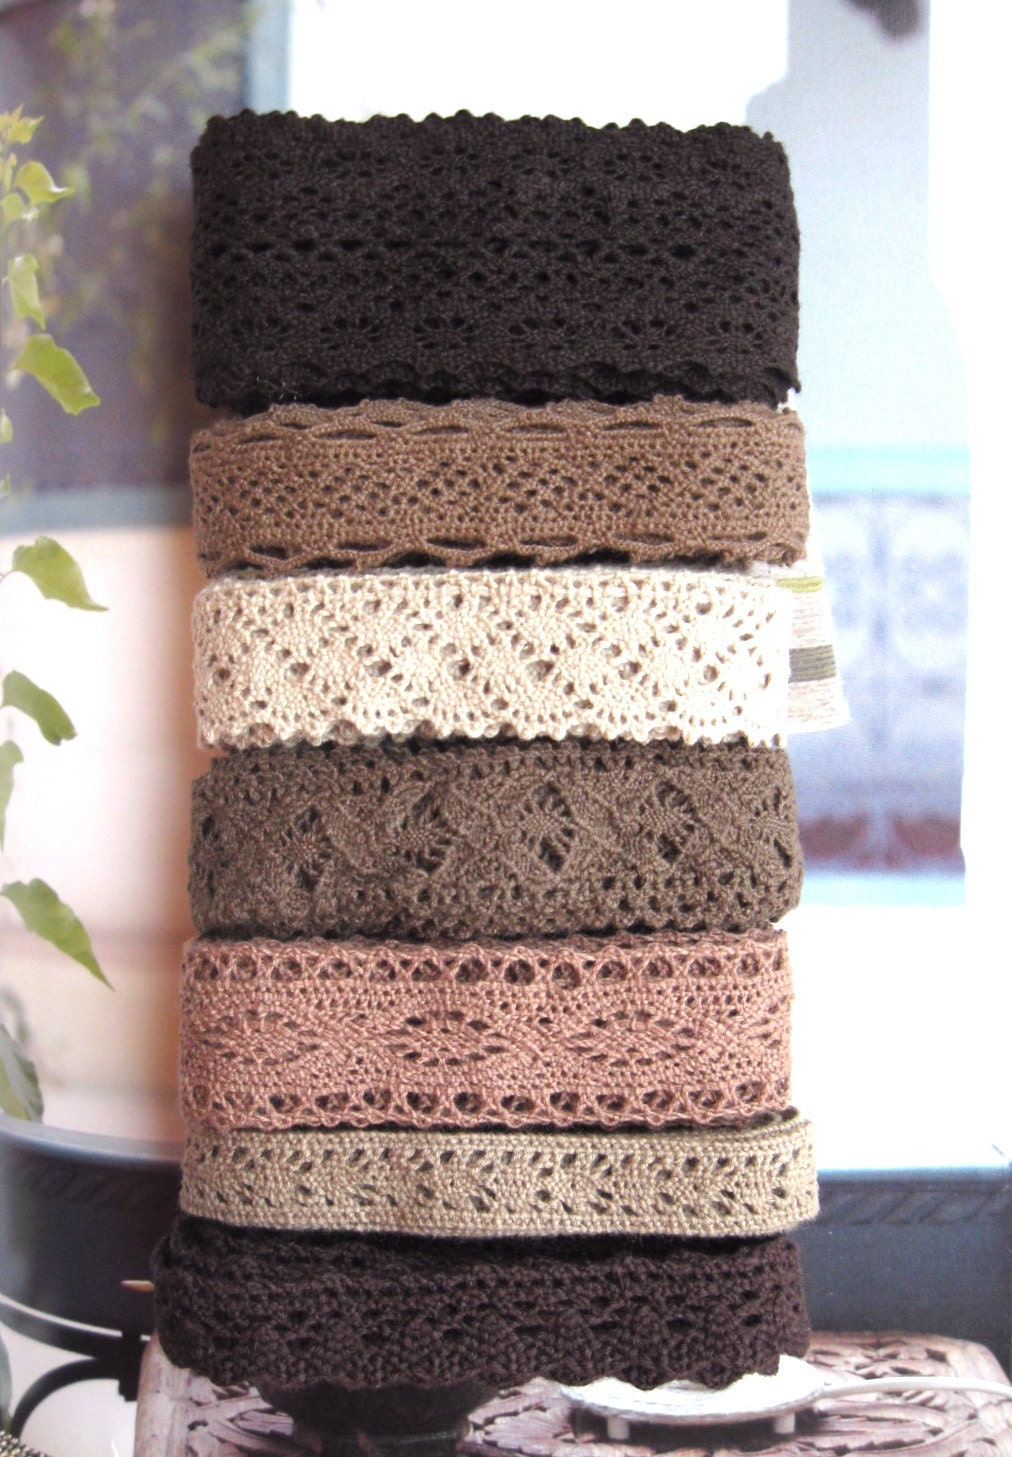 Cotton Lace Fabric Trim - Beige Brown Cream Floral Crochet Cotton Lace Ribbon Trim 7 Designs 14 Meters